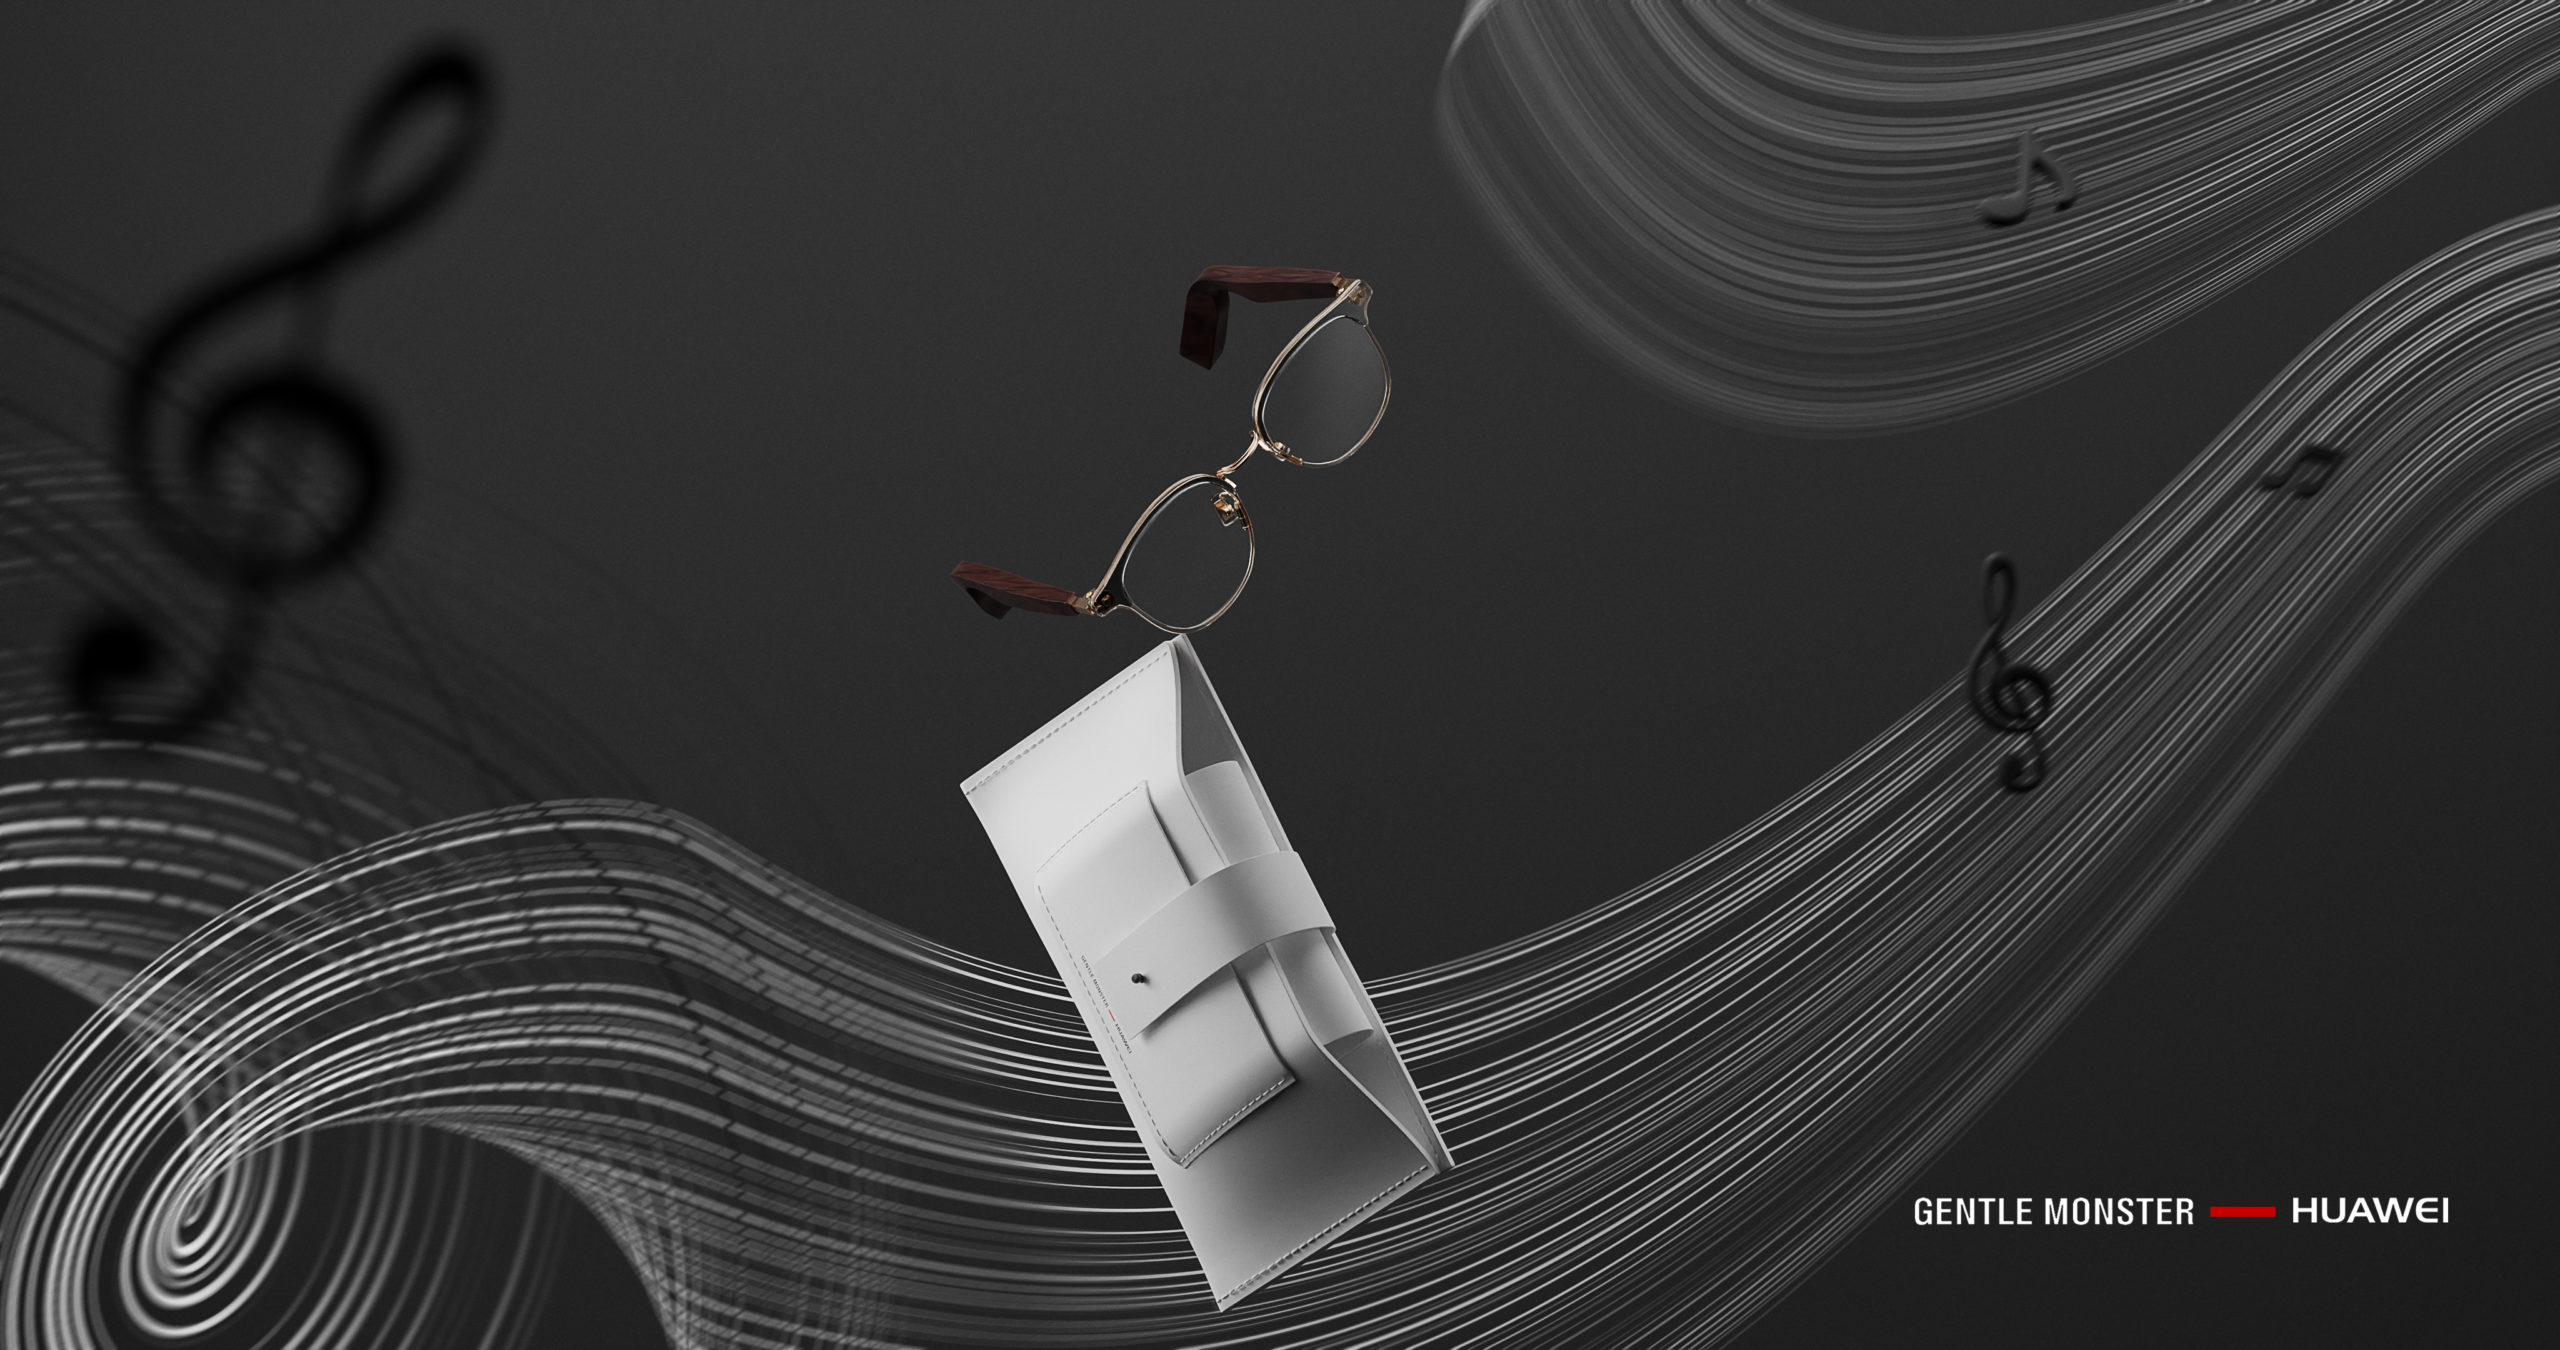 Product photographer Sydney Wenbo-CGI-Project-with-HUAWEI-Gentle-Monster-Glasses Dark background